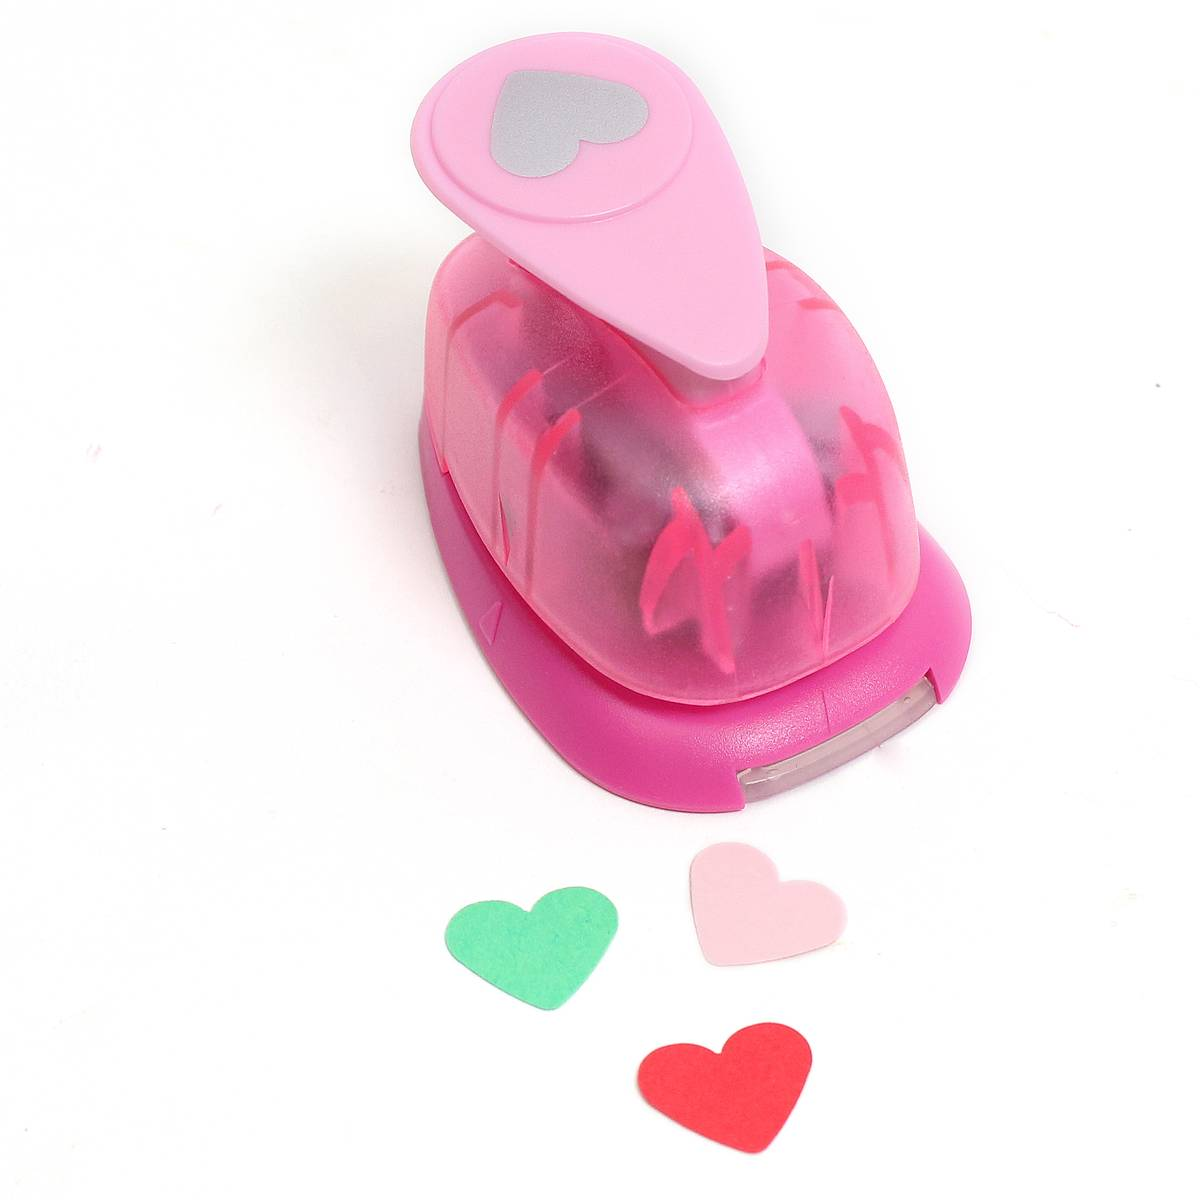 - Heart Craft Punch 0.6 inches, Hobbycraft, £2